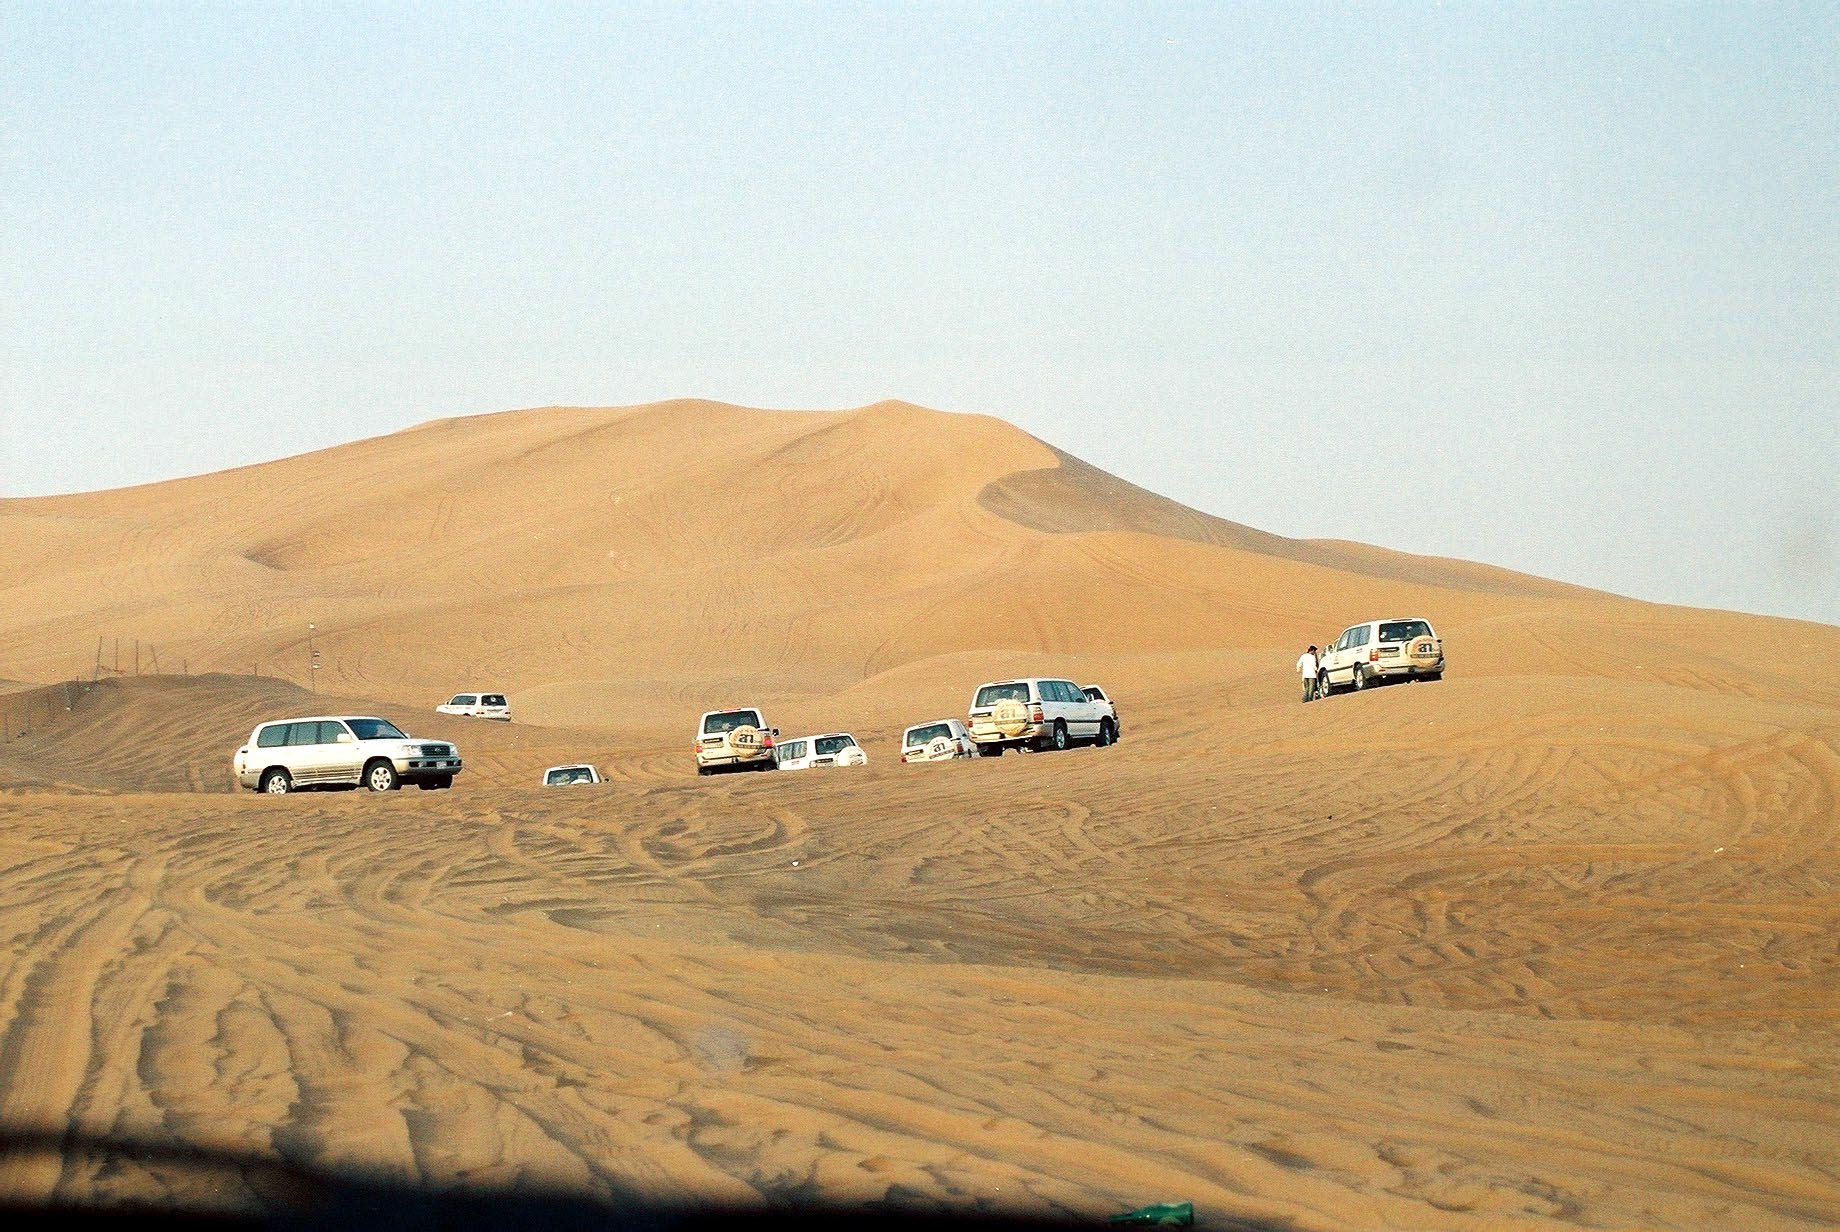 Convoys of land cruisers approaching a big dune